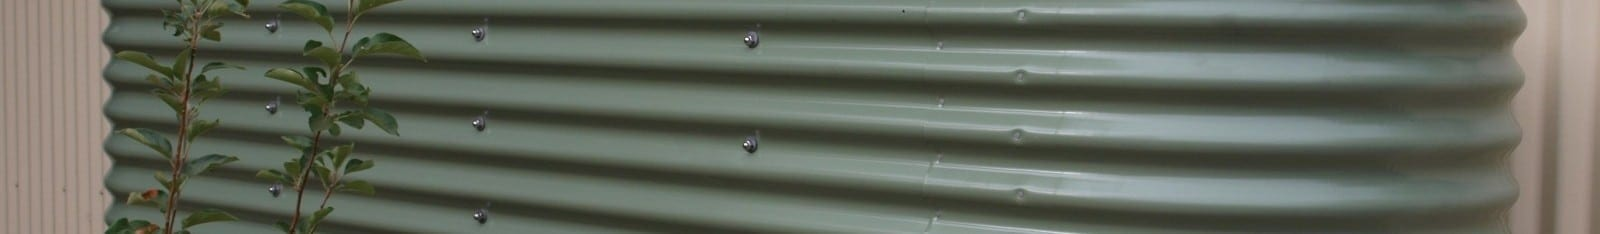 Rainwater Harvesting: From Water in the Sky into Water Tanks in Perth